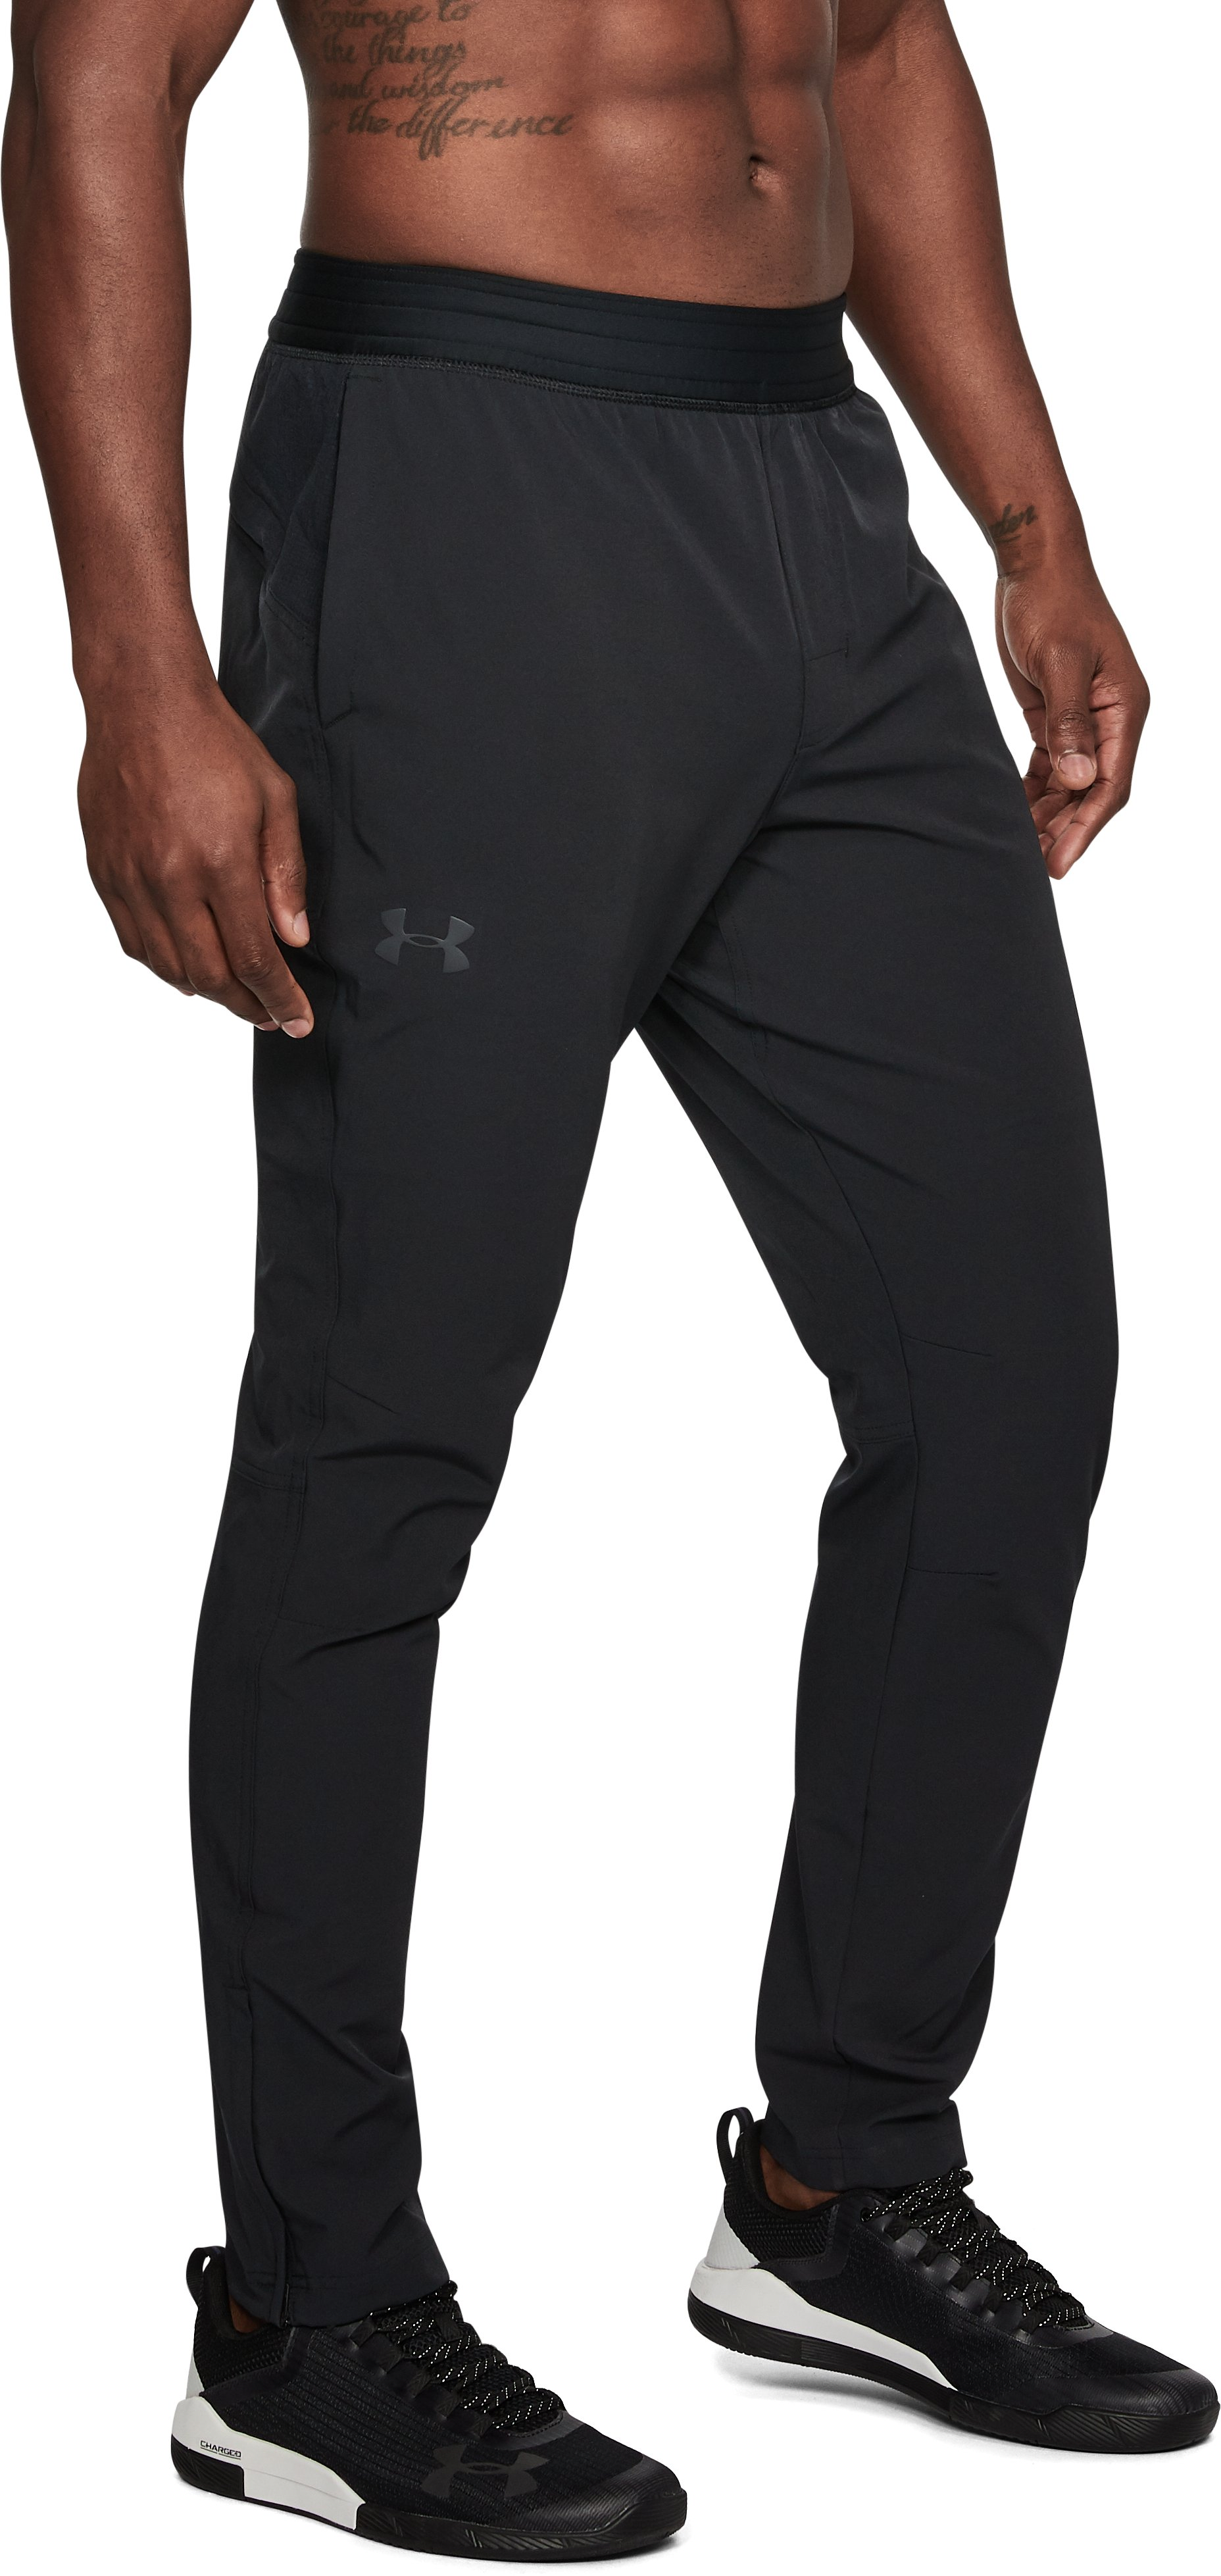 Men's TRX UA Woven Training Pants, Black